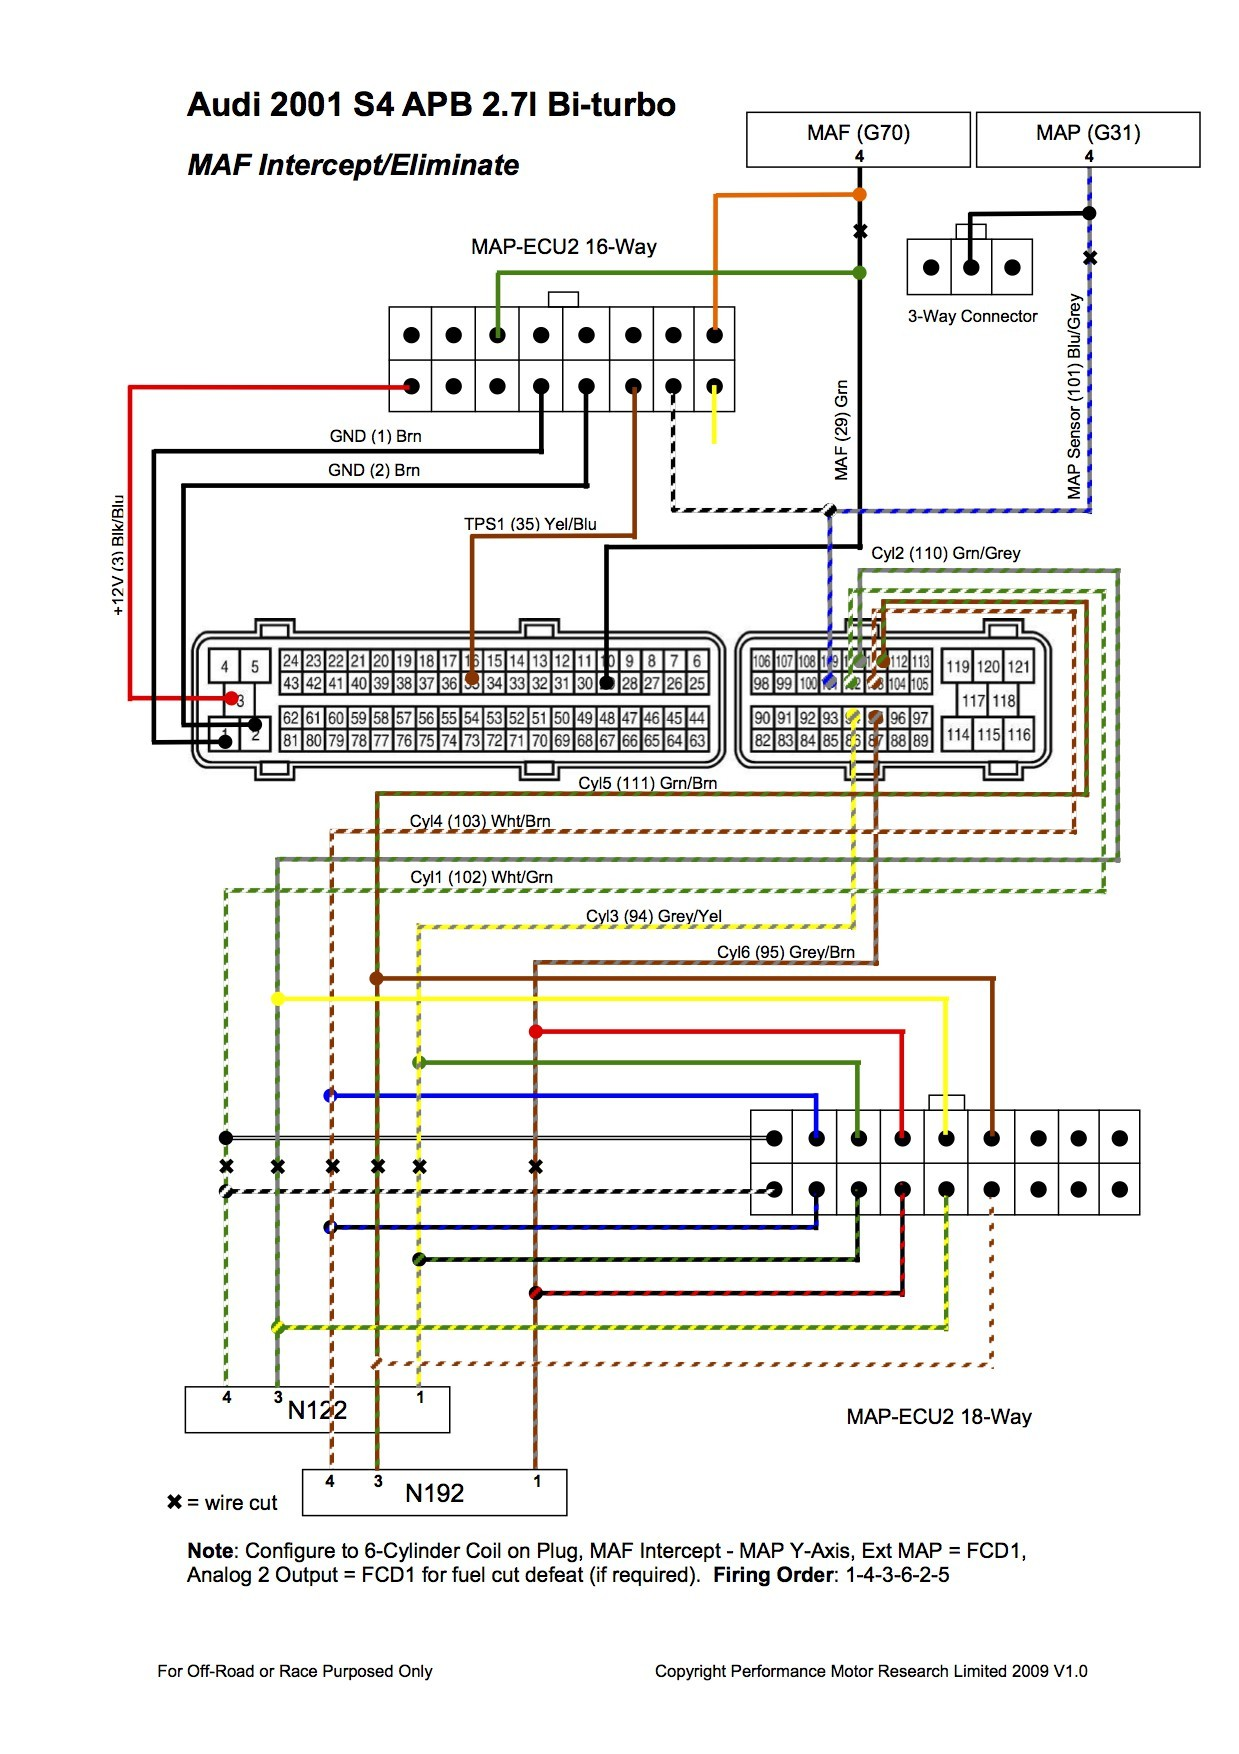 Wiring Diagram For A Jvc Car Stereo Connector 2000 Connectors Plug Get Free Image About Related Post